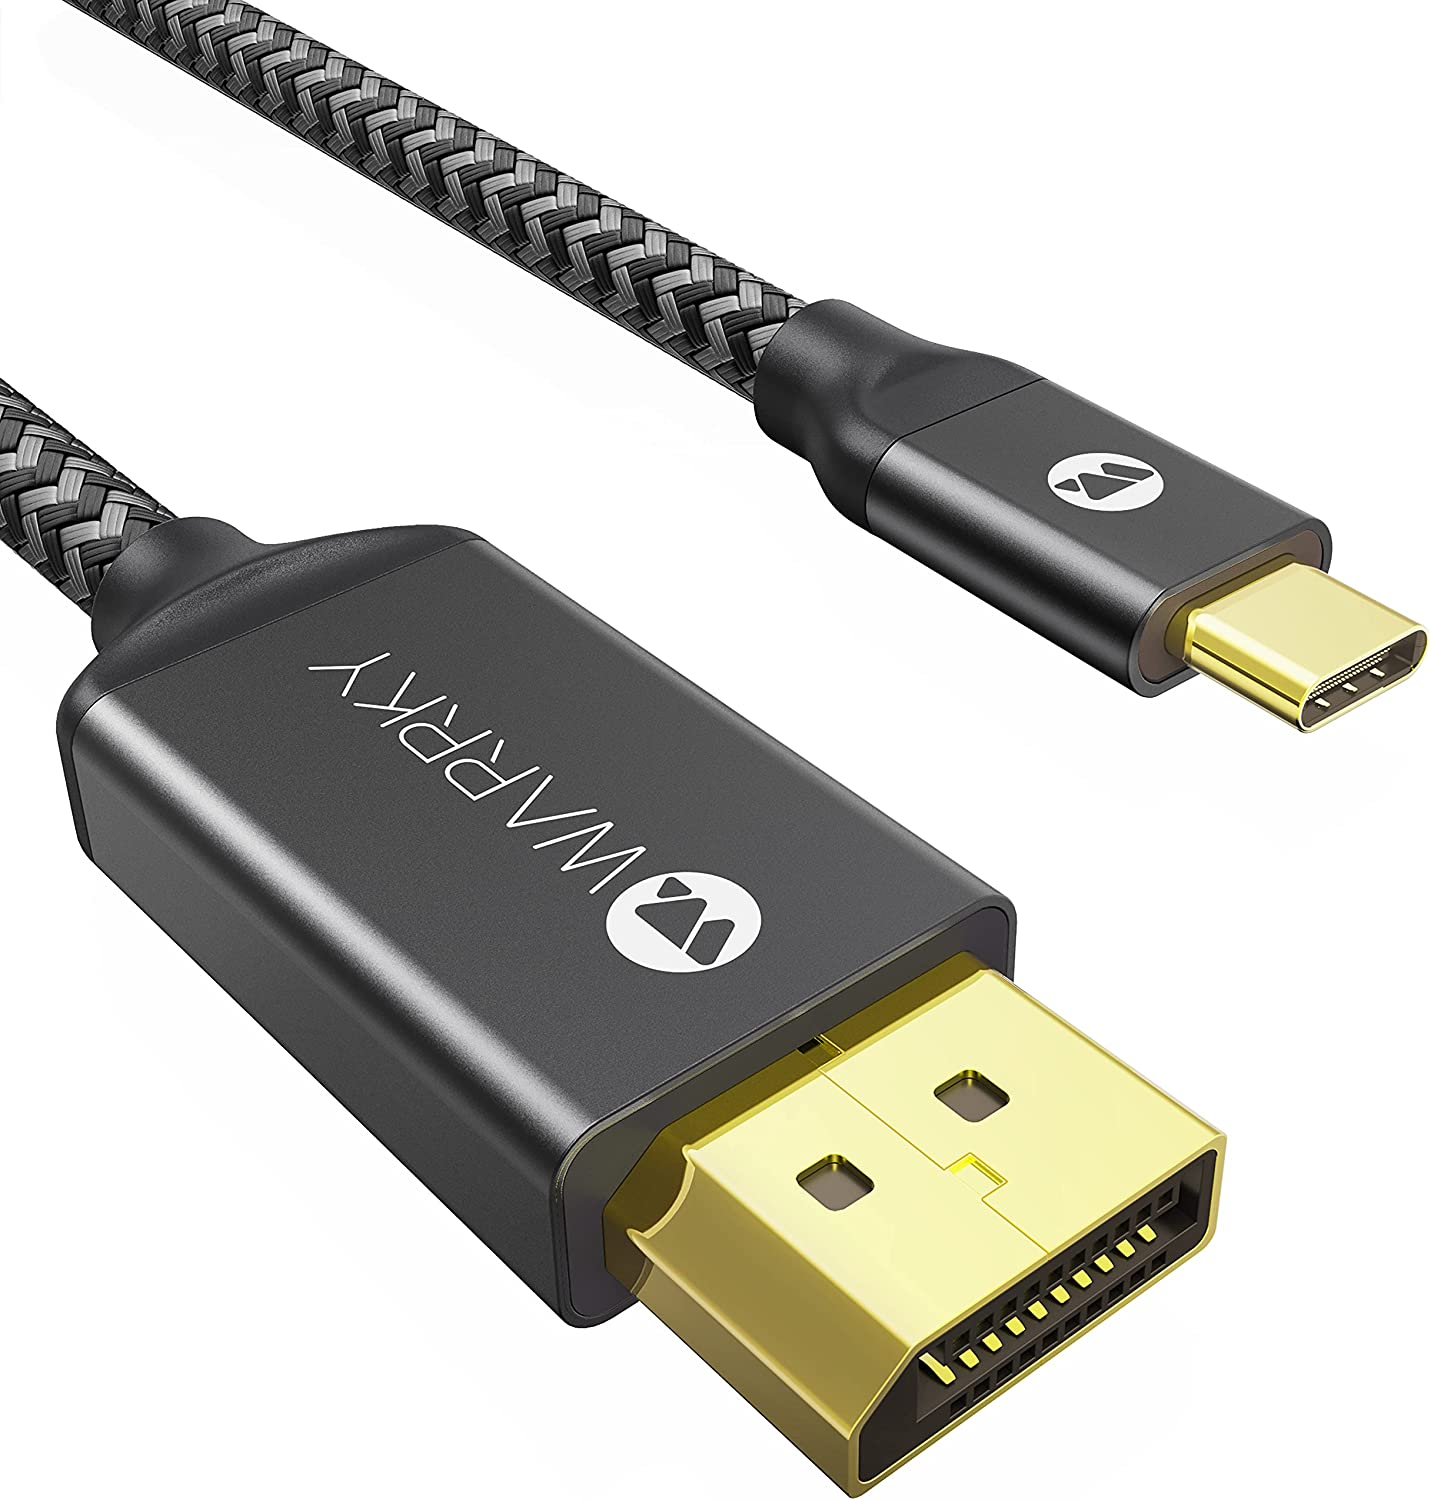 USB C to DisplayPort Cable (4K 60Hz, 2K 144Hz / 165Hz), WARRKY [Gold-Plated Anti-Interference] Thunderbolt 3 and 4 Compatible Adapter for MacBook Pro/Air 2020, New iPad, XPS 15/13 - Active, 6ft